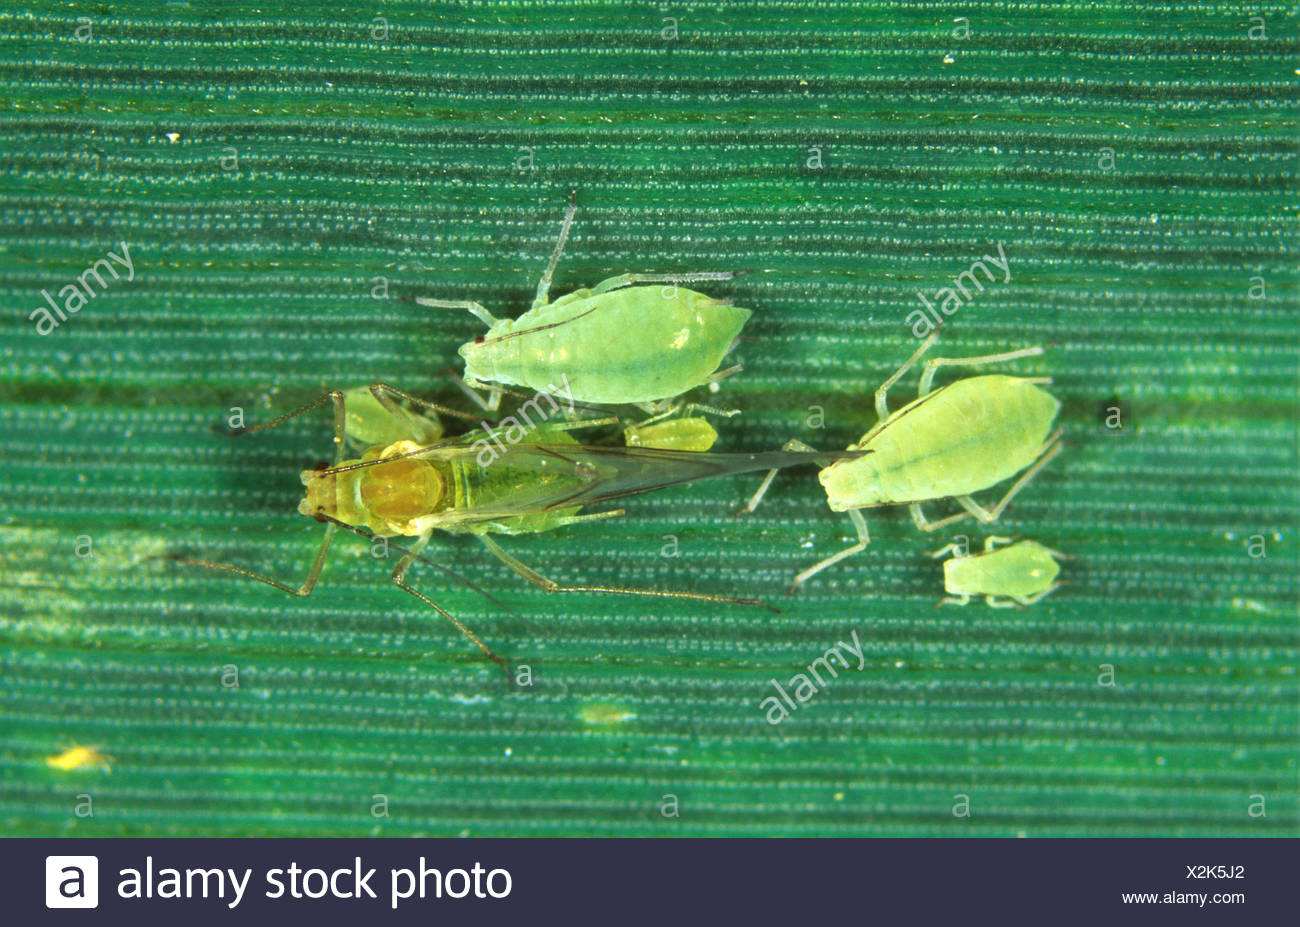 Rose grain aphid Metapolophium dirhodum alate and apterous stages on wheat leaf - Stock Image